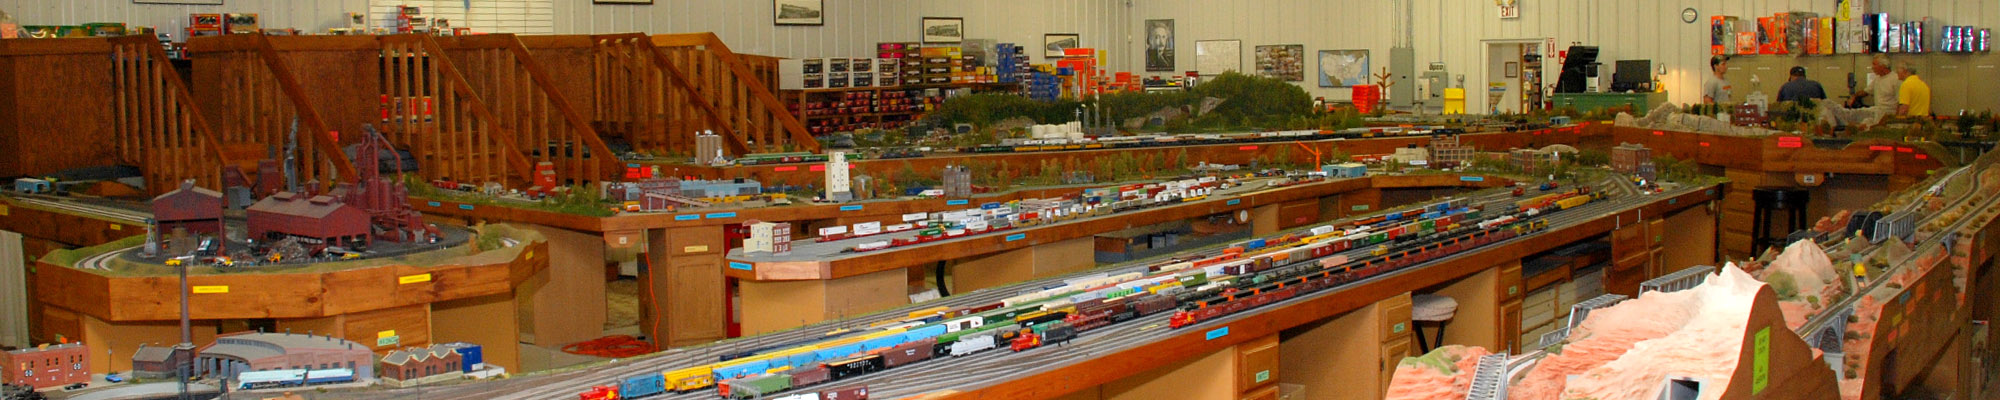 K-10 Model Trains, RC Model Airplanes, RC Cars & Hobby Shop in Maryville, IL